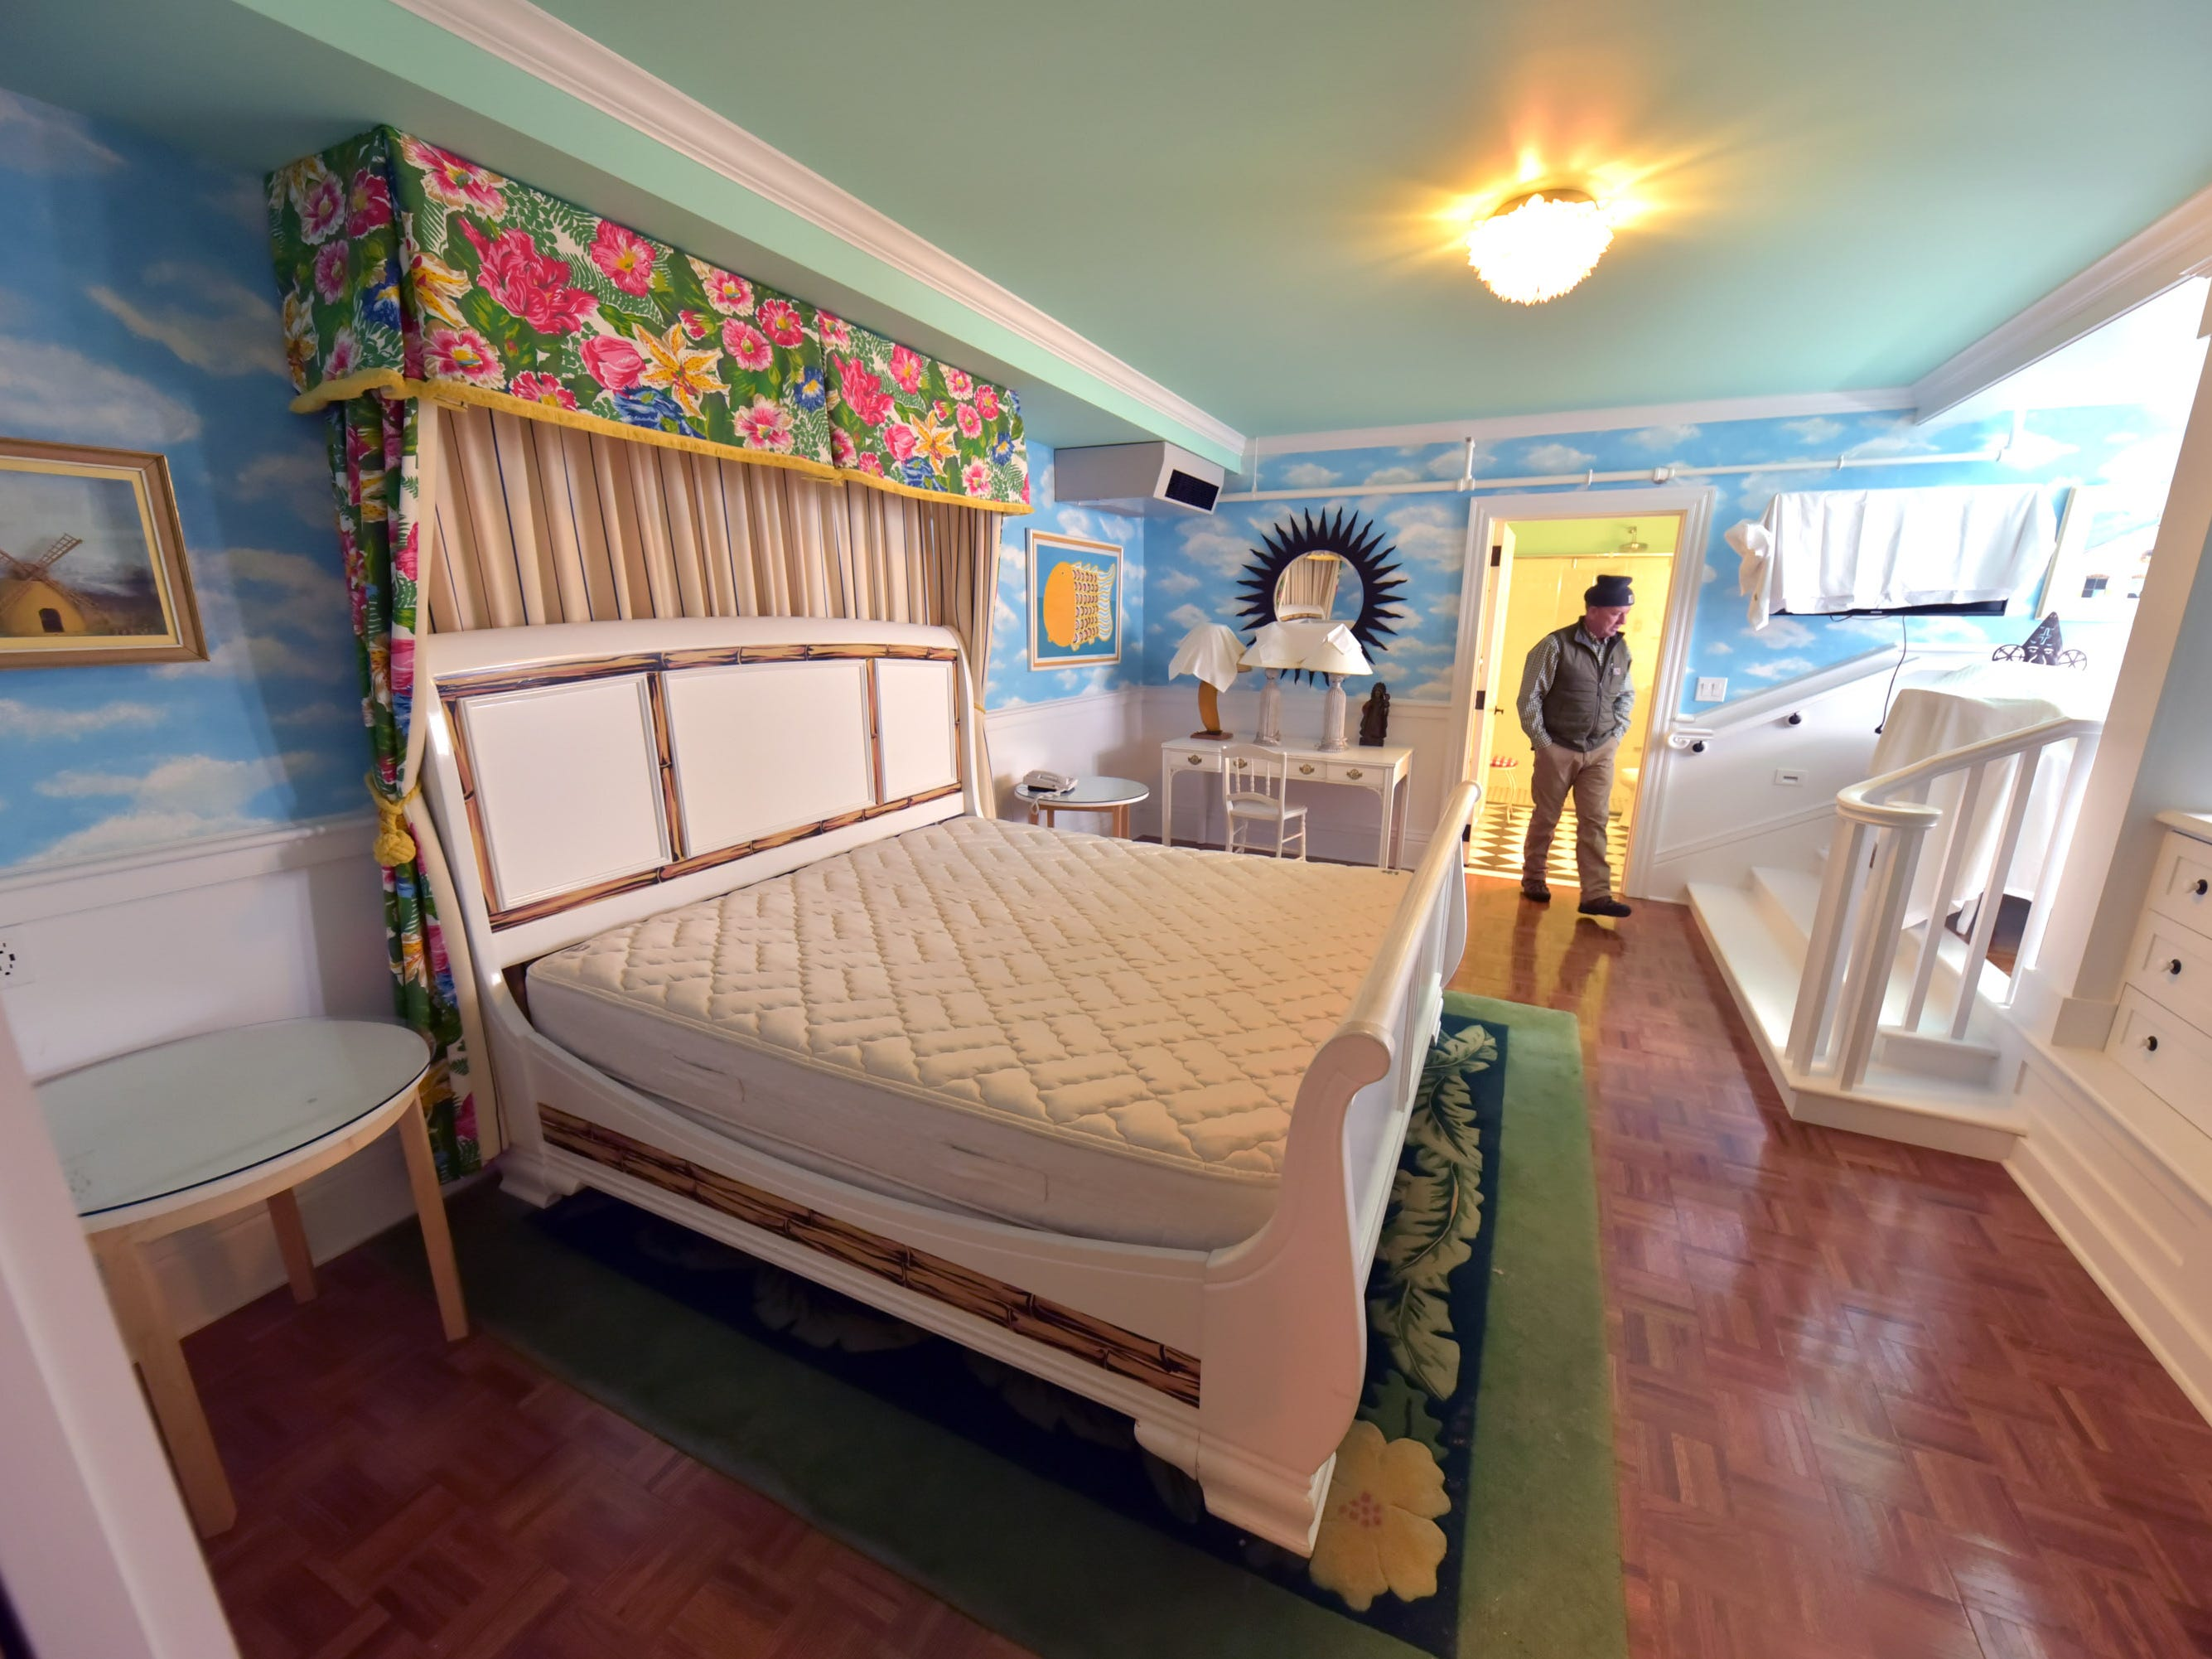 A bedroom in the Cupola Suites project at Mackinac Island's iconic Grand Hotel is inspected by Andy McGreevy, construction project mananger.